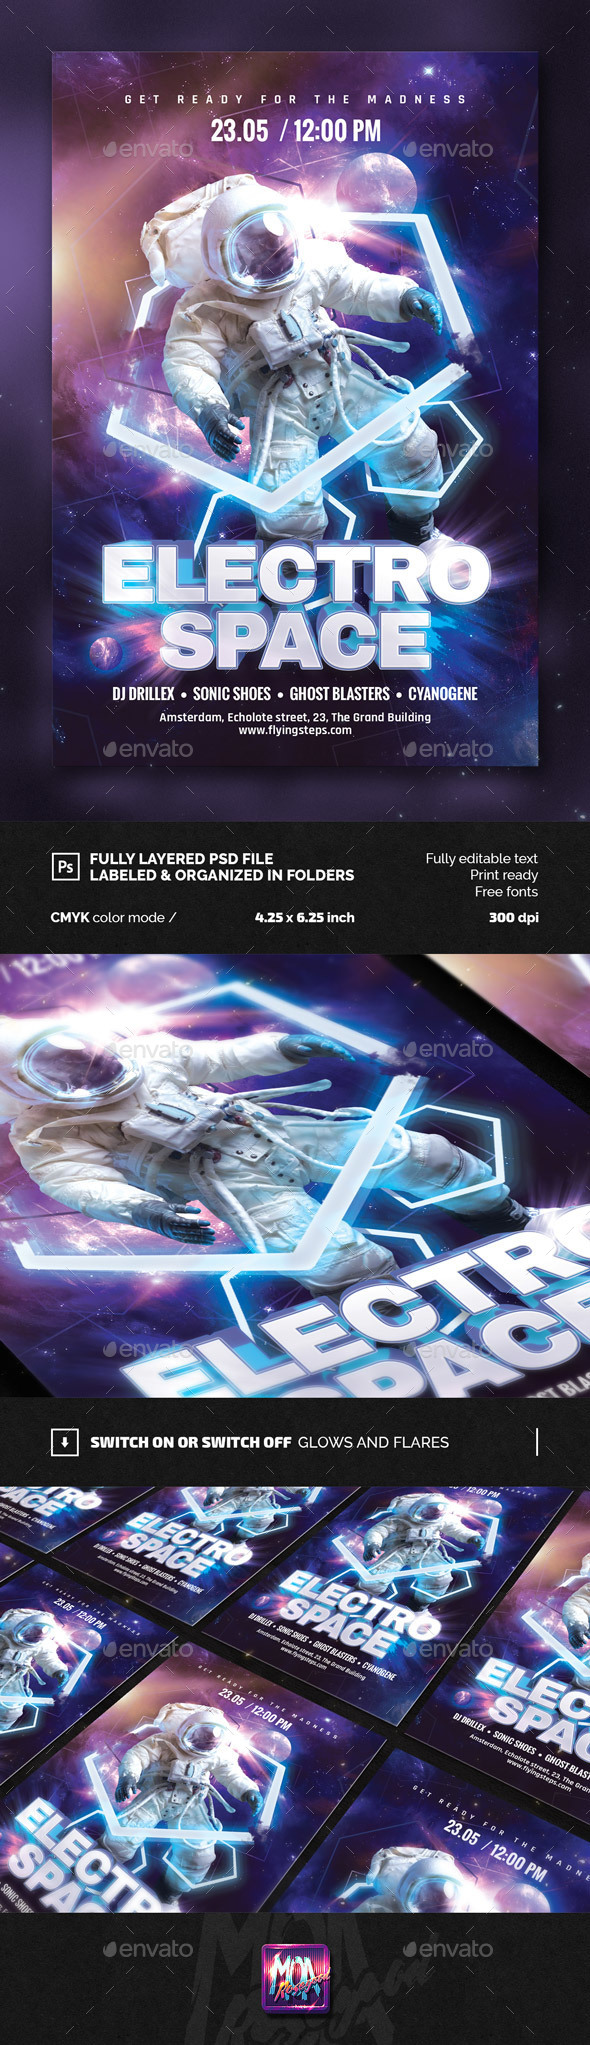 Electro Space Party flyer - Clubs & Parties Events